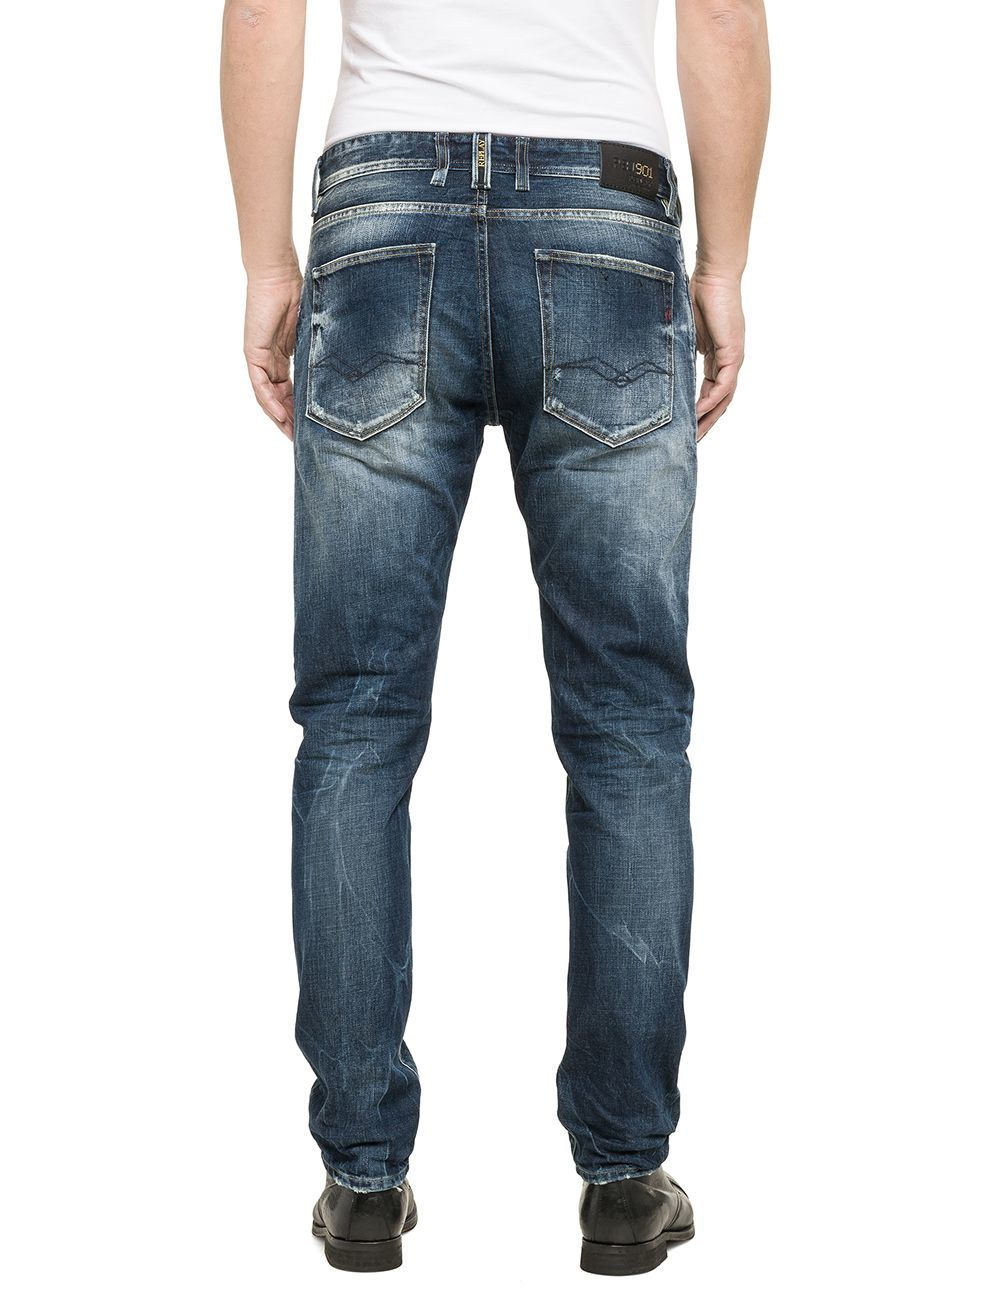 Replay Rbj 901 Tapered Slim Fit Jeans in Blue for Men